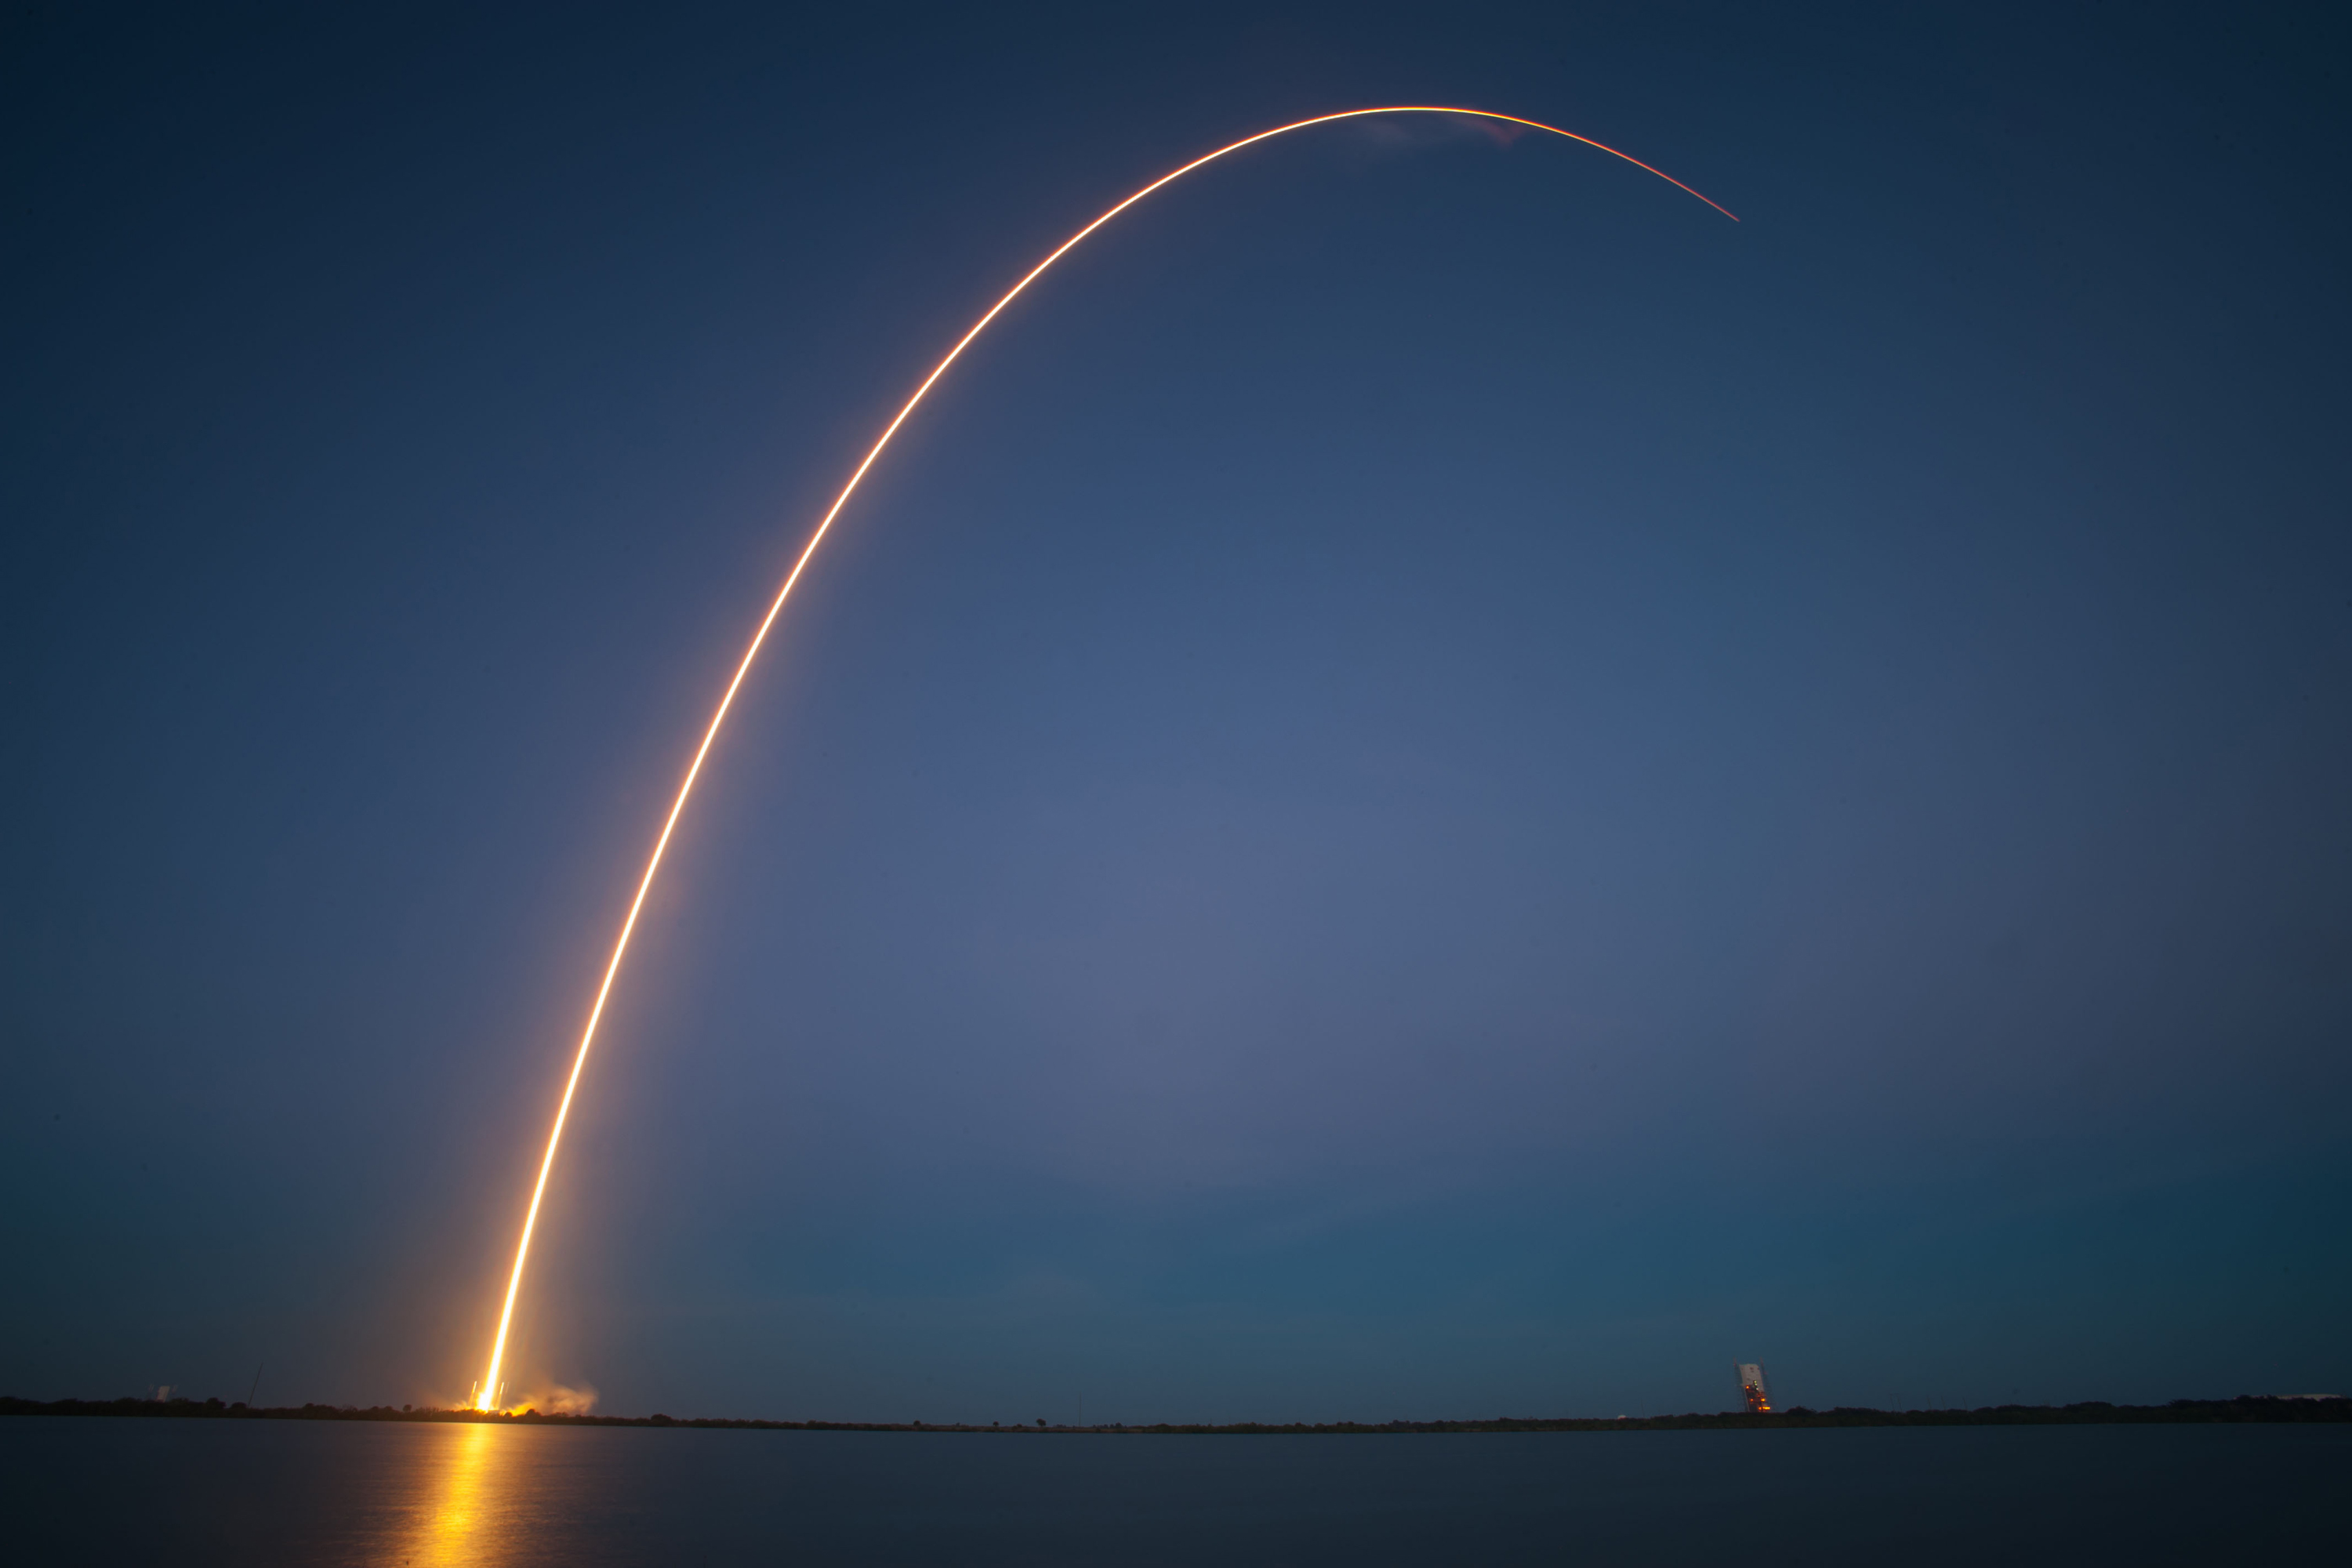 Falcon 9 and SES-8 launch from SpaceX's launch pad at Cape Canaveral. Credit: SpaceX